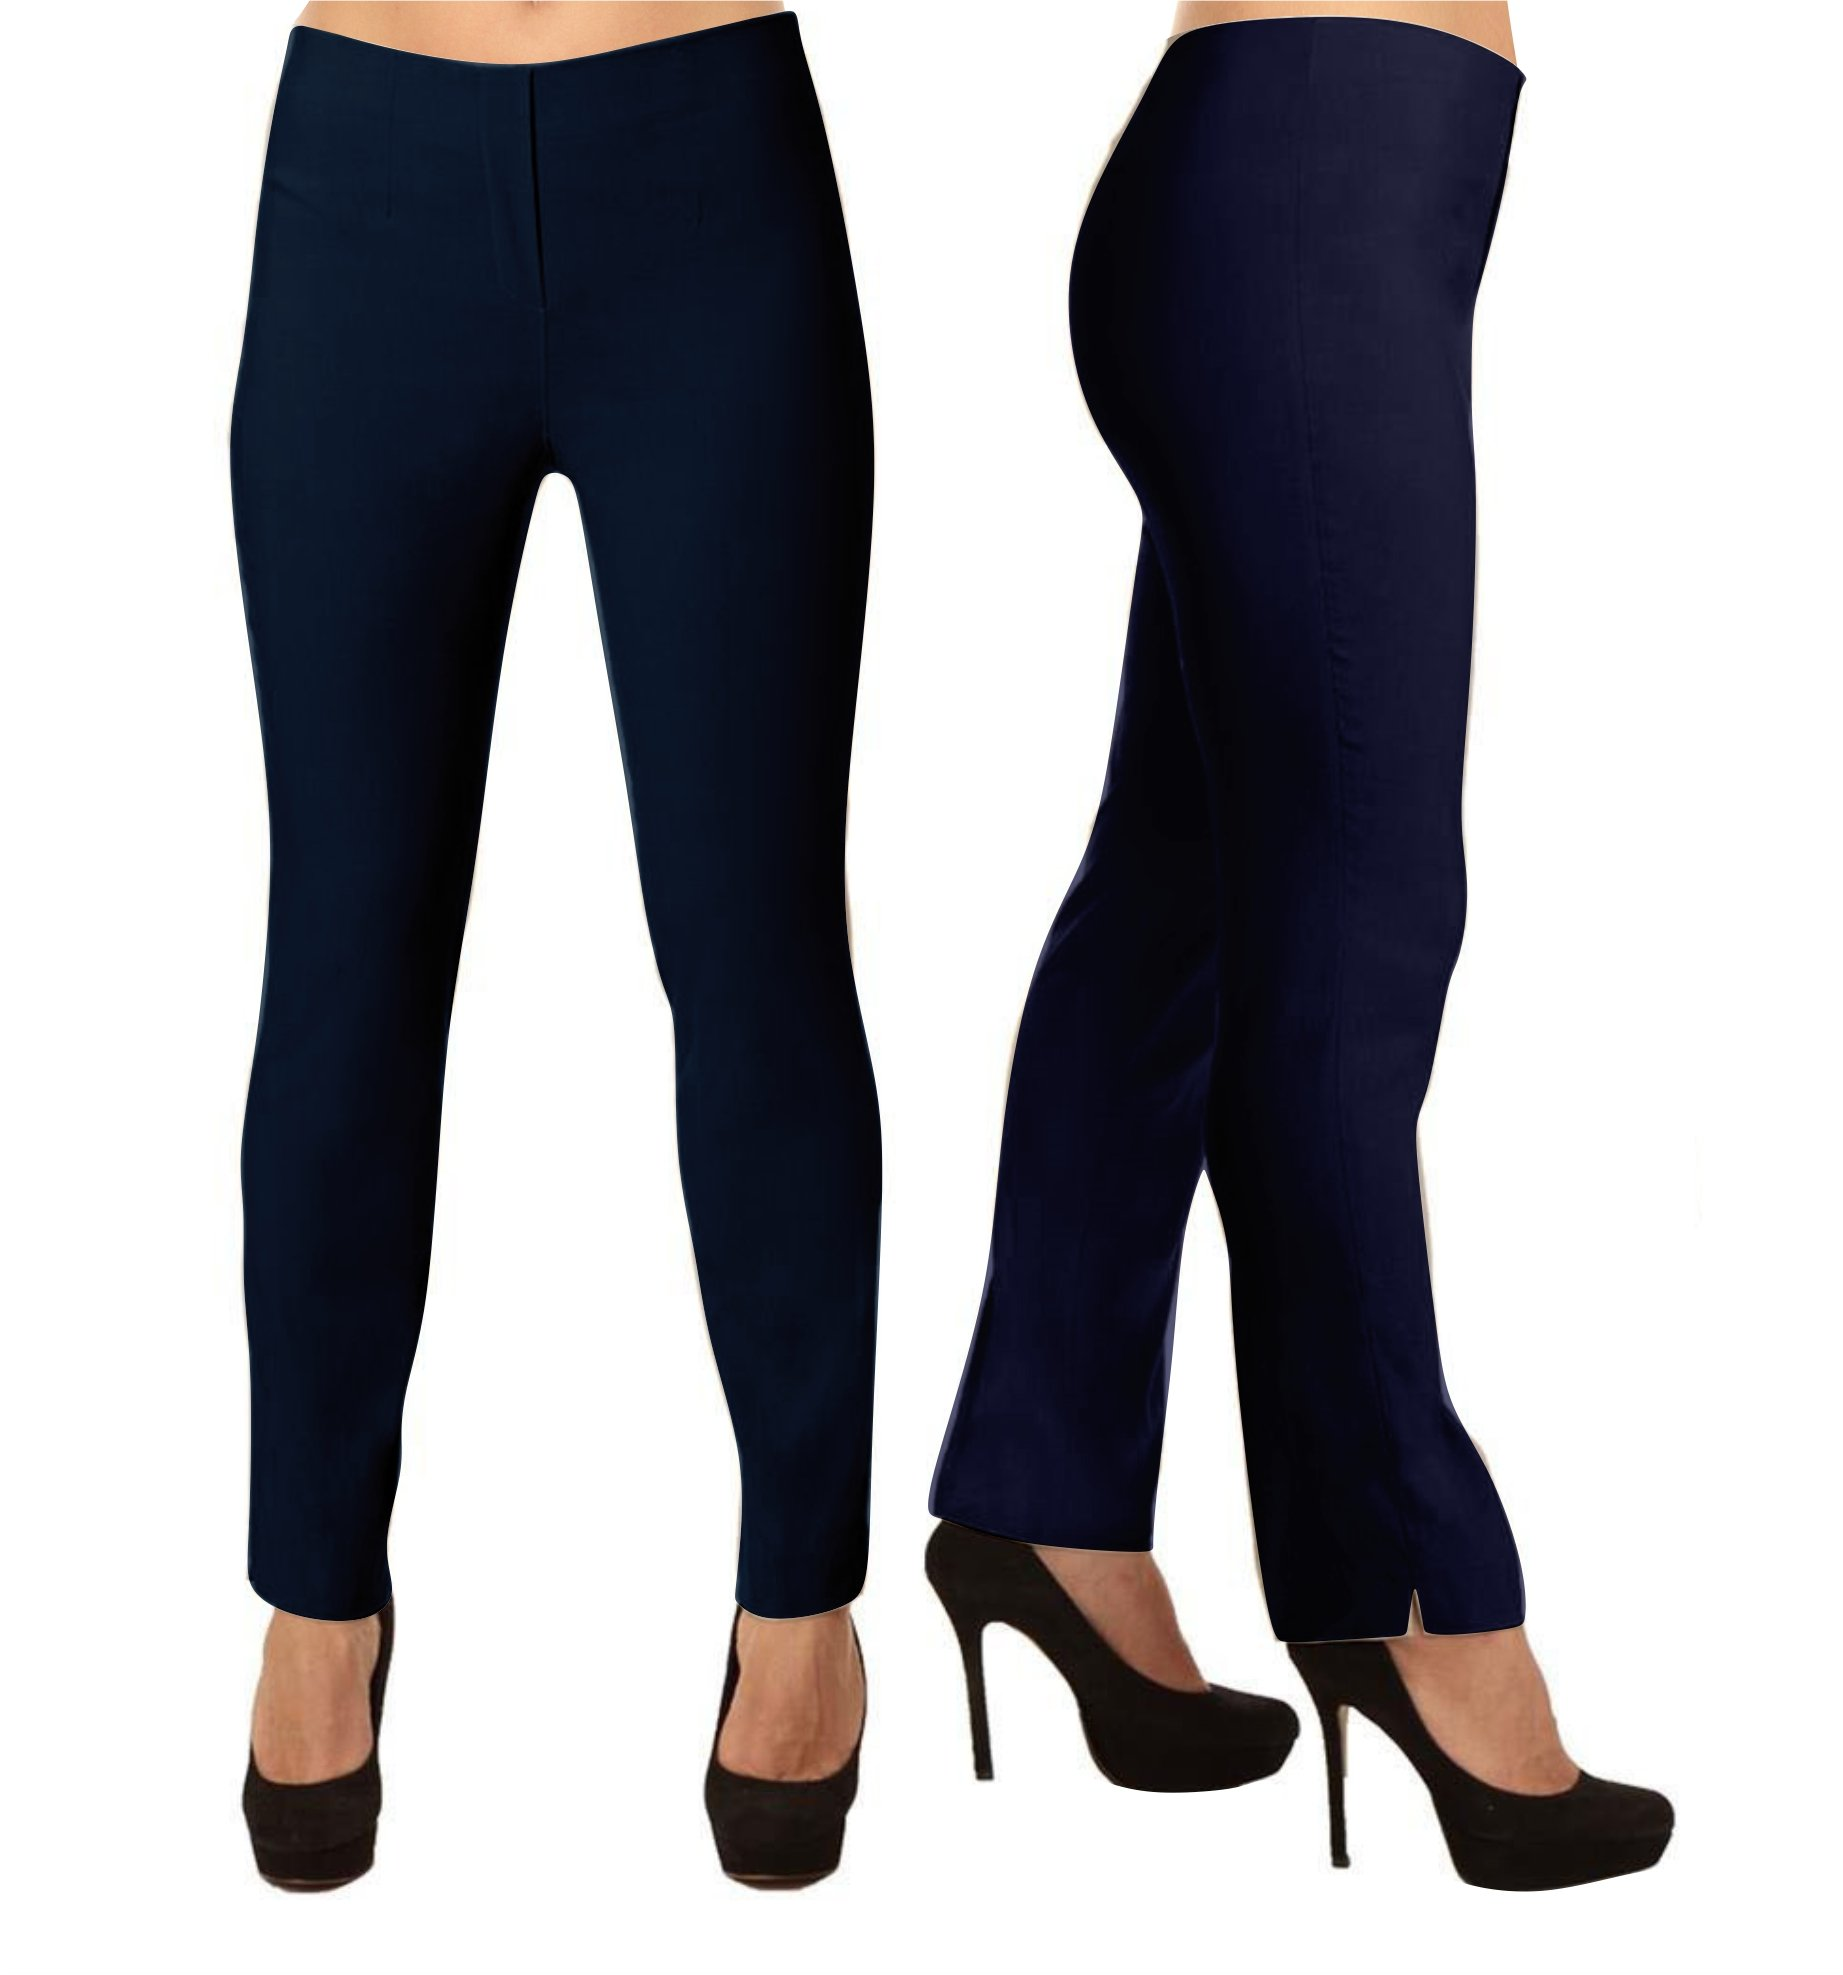 Lior Paris LIZE a Classic Fit Straight Pant For EveryBody. (3, Navy) by Lior paris